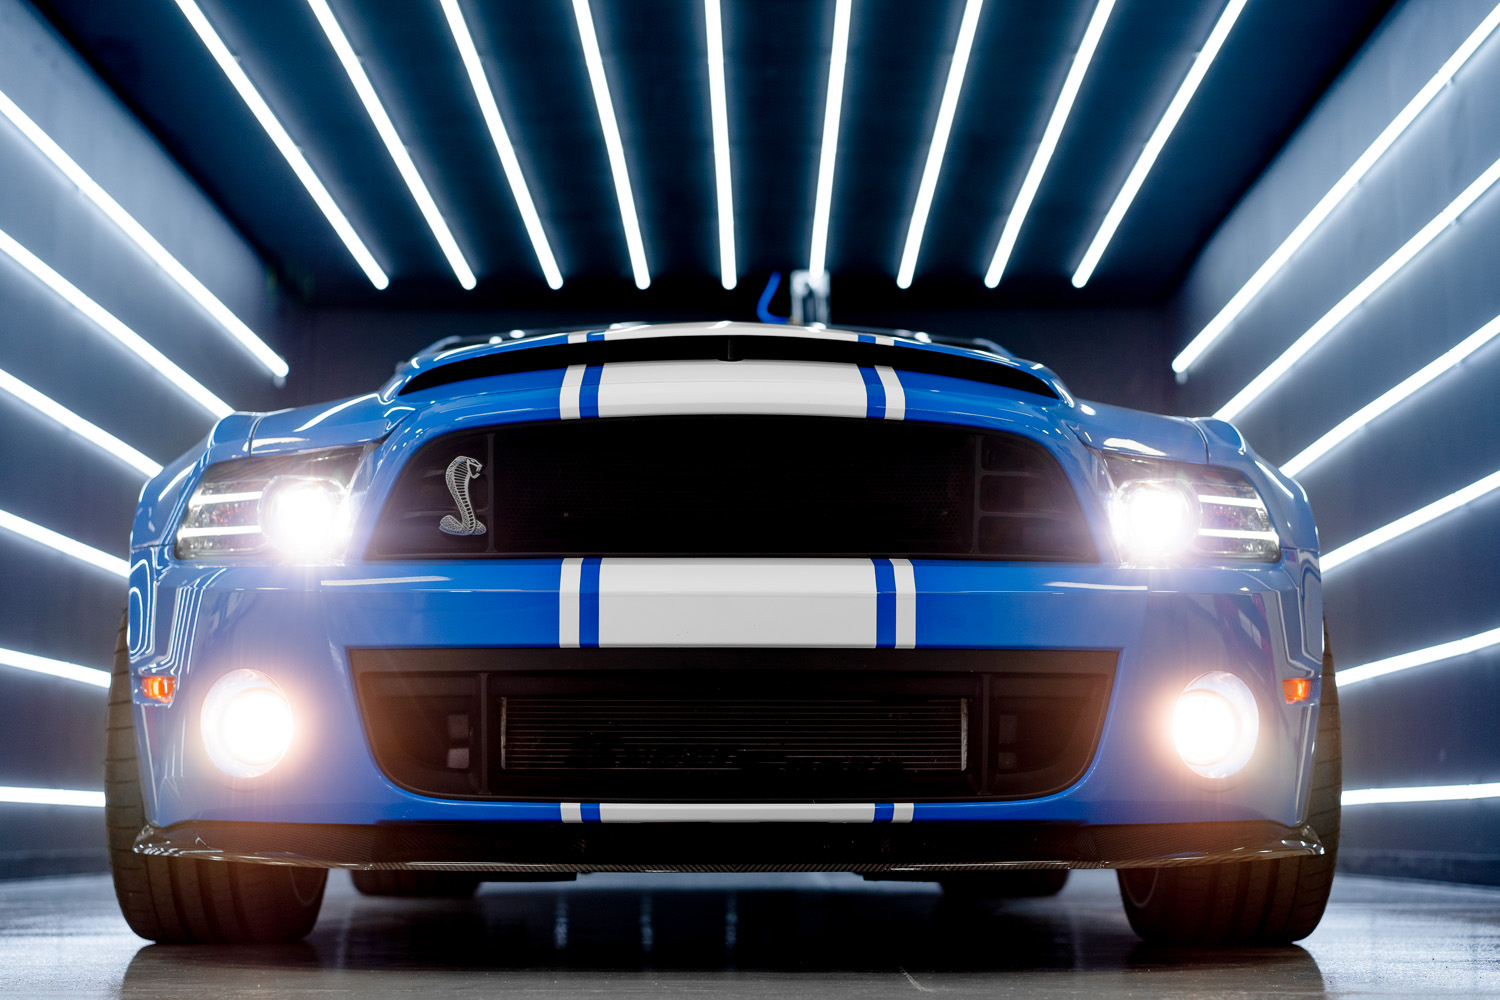 The front of a blue Mustang super snake